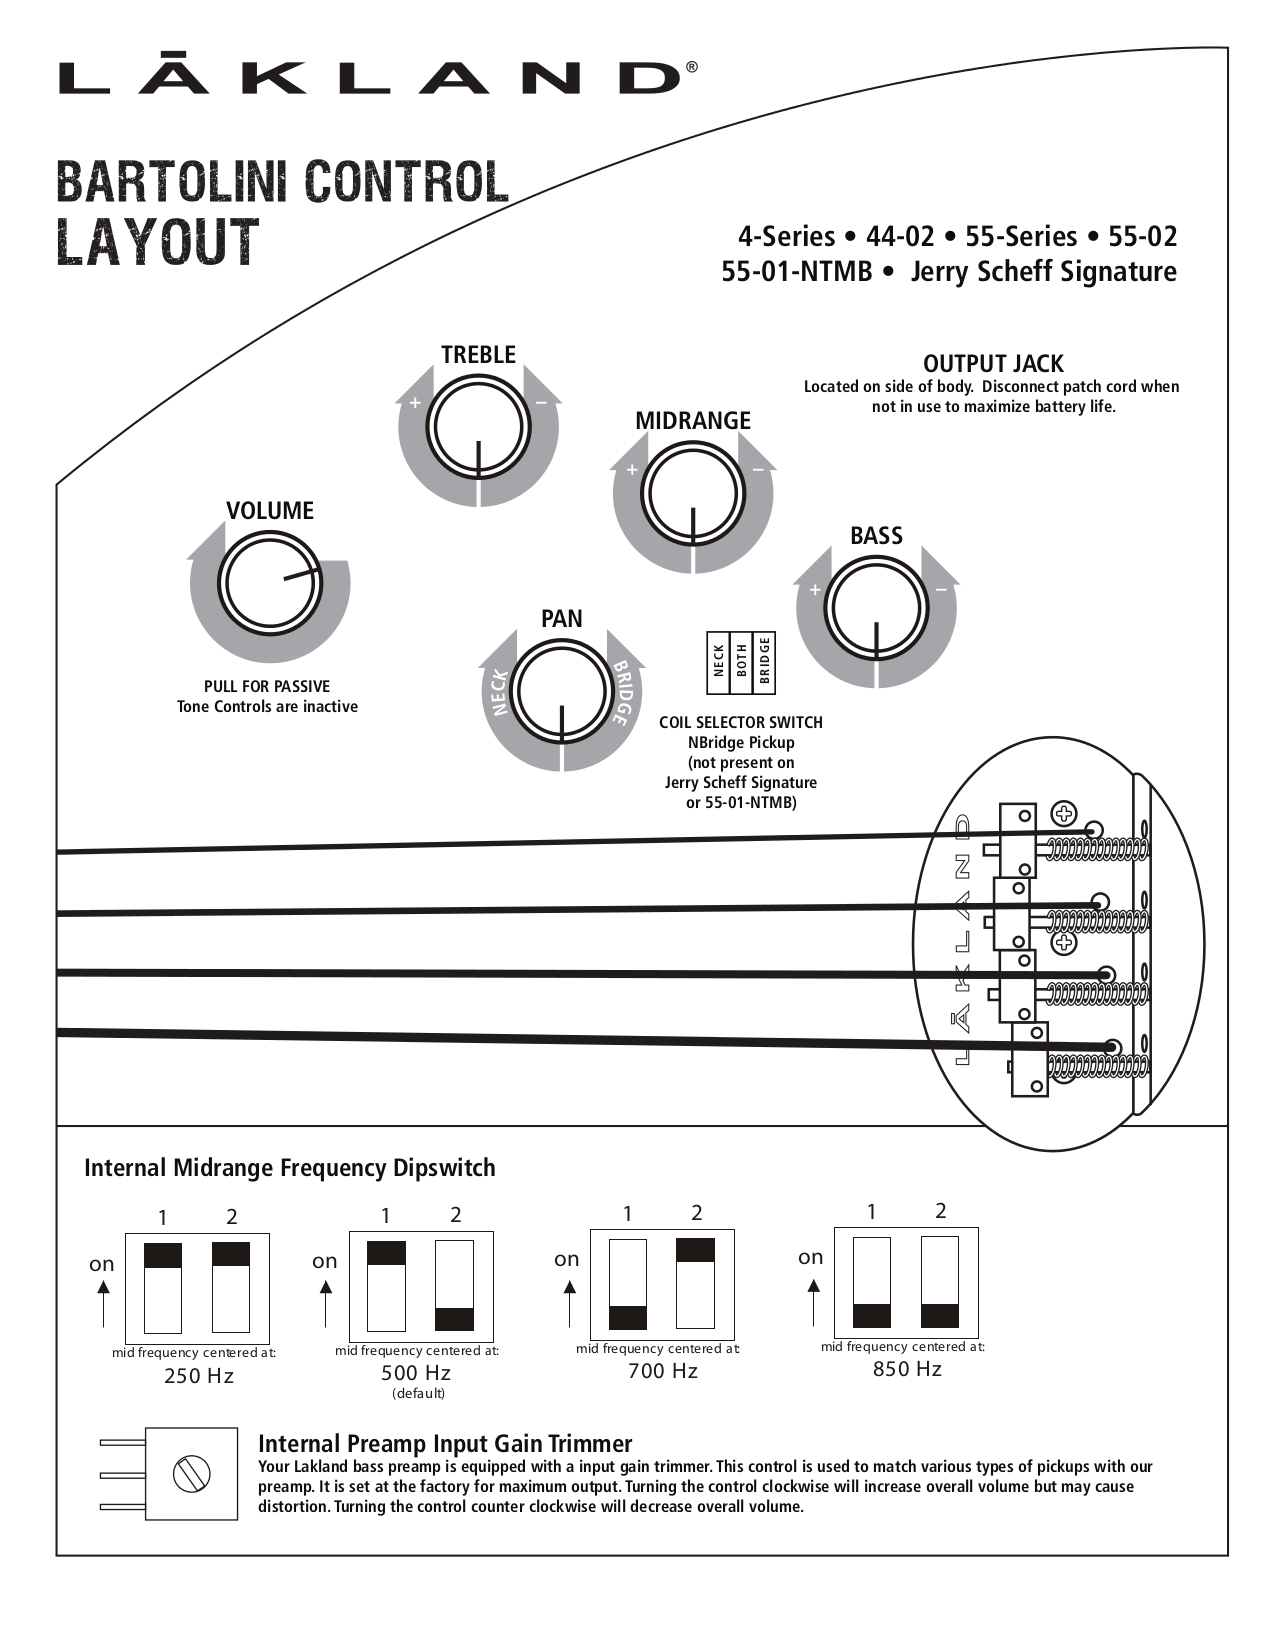 bart controls.pdf 0 download free pdf for lakland skyline 55 01 guitar manual lakland 5502 wiring diagram at mifinder.co